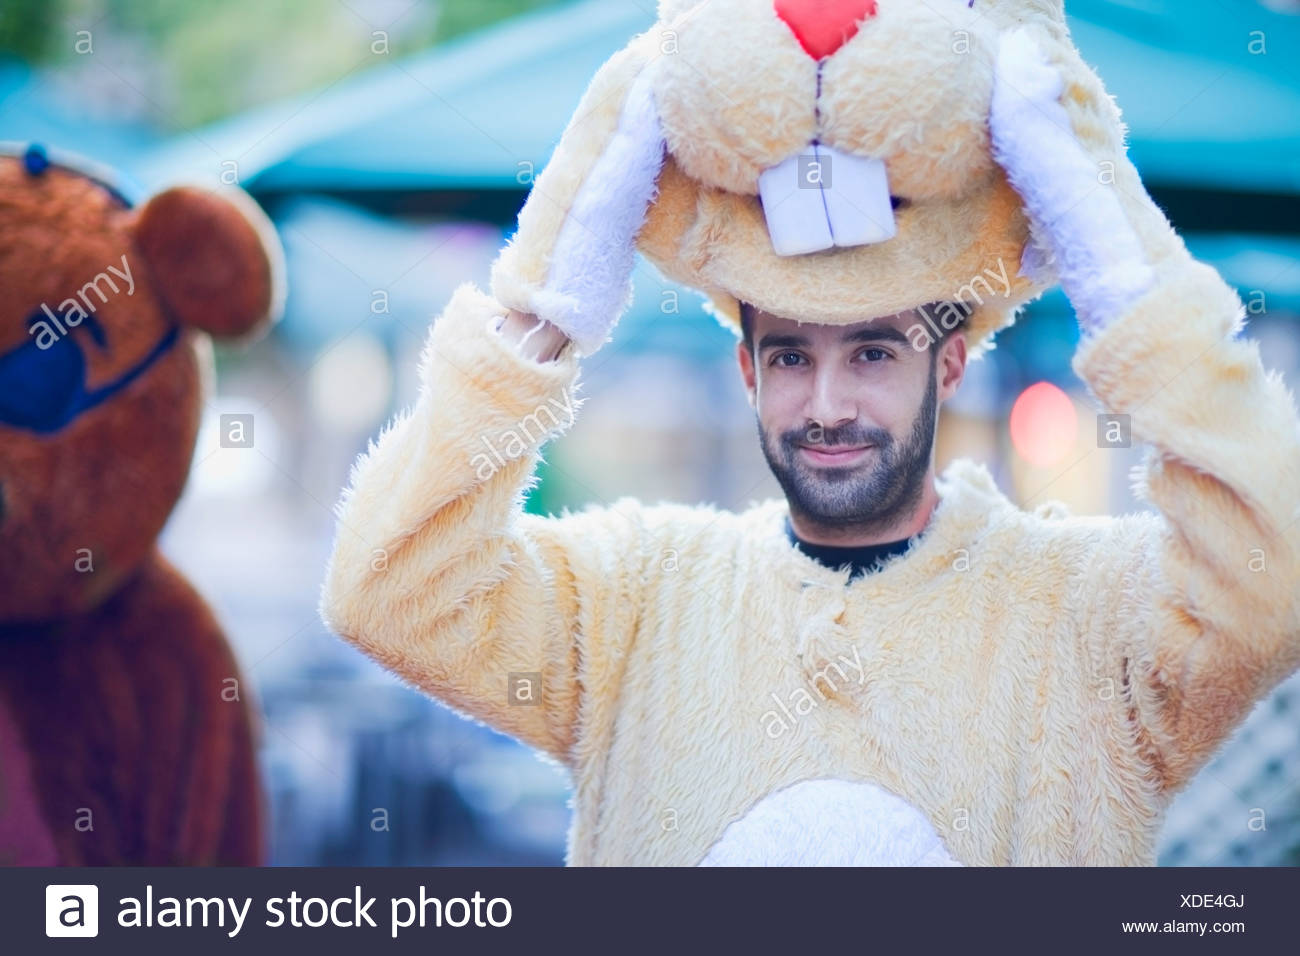 Man in a bunny costume - Stock Image